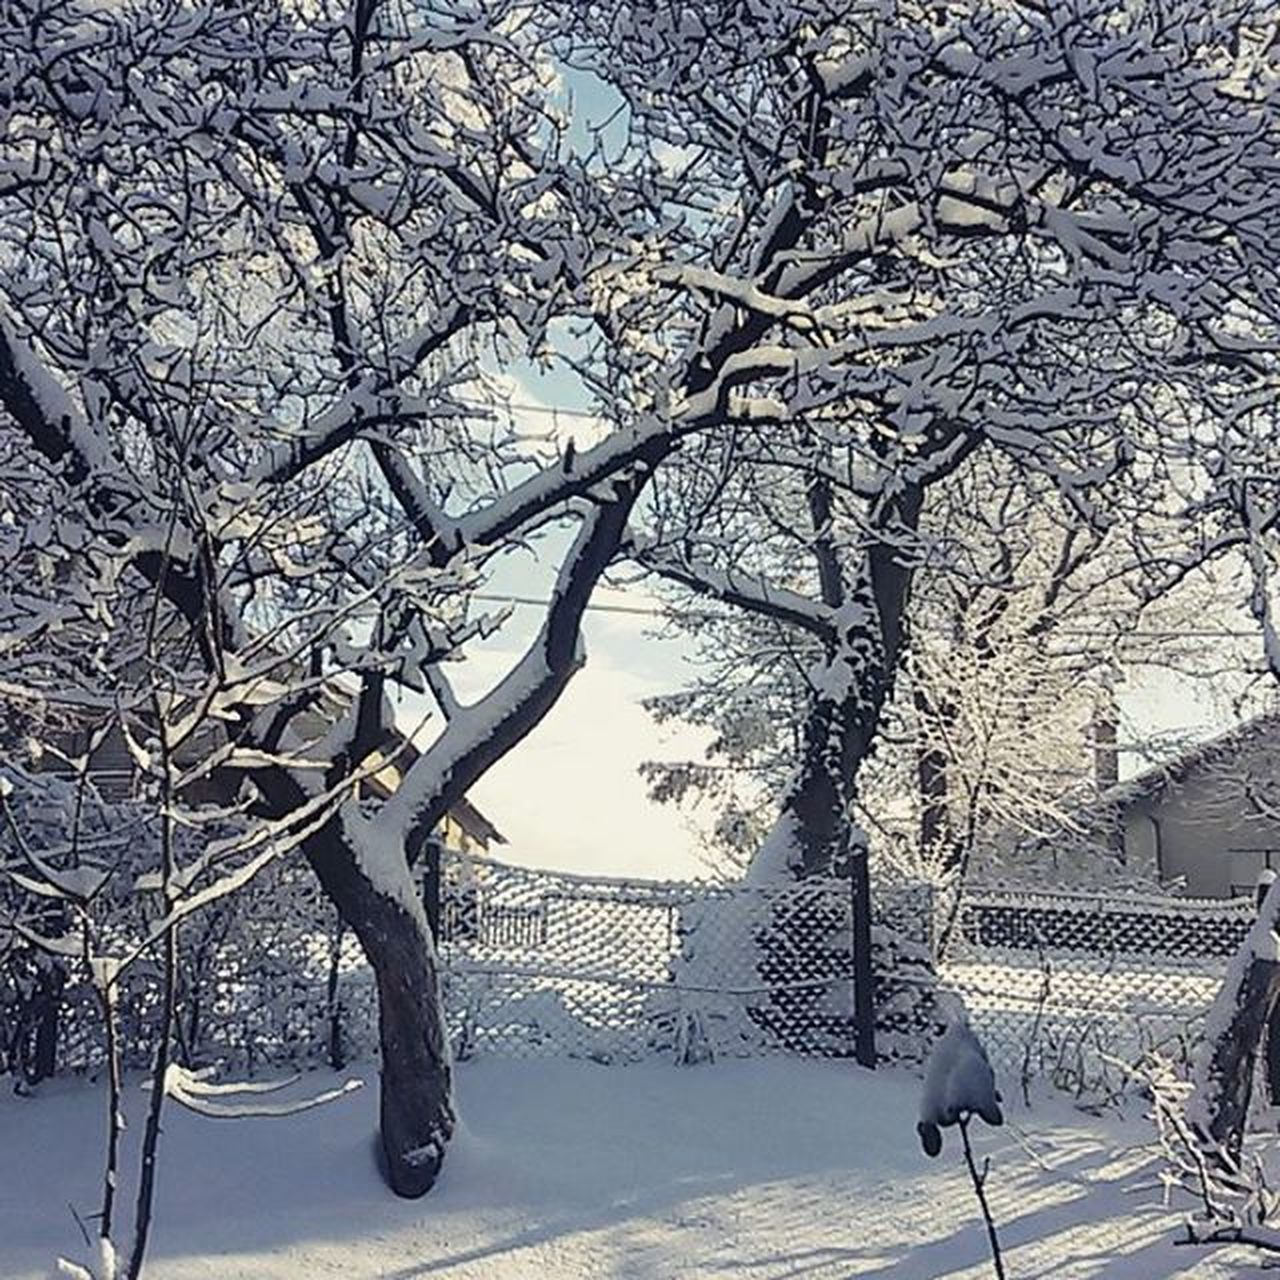 tree, snow, winter, cold temperature, branch, bare tree, nature, animal themes, no people, one animal, dog, outdoors, mammal, day, beauty in nature